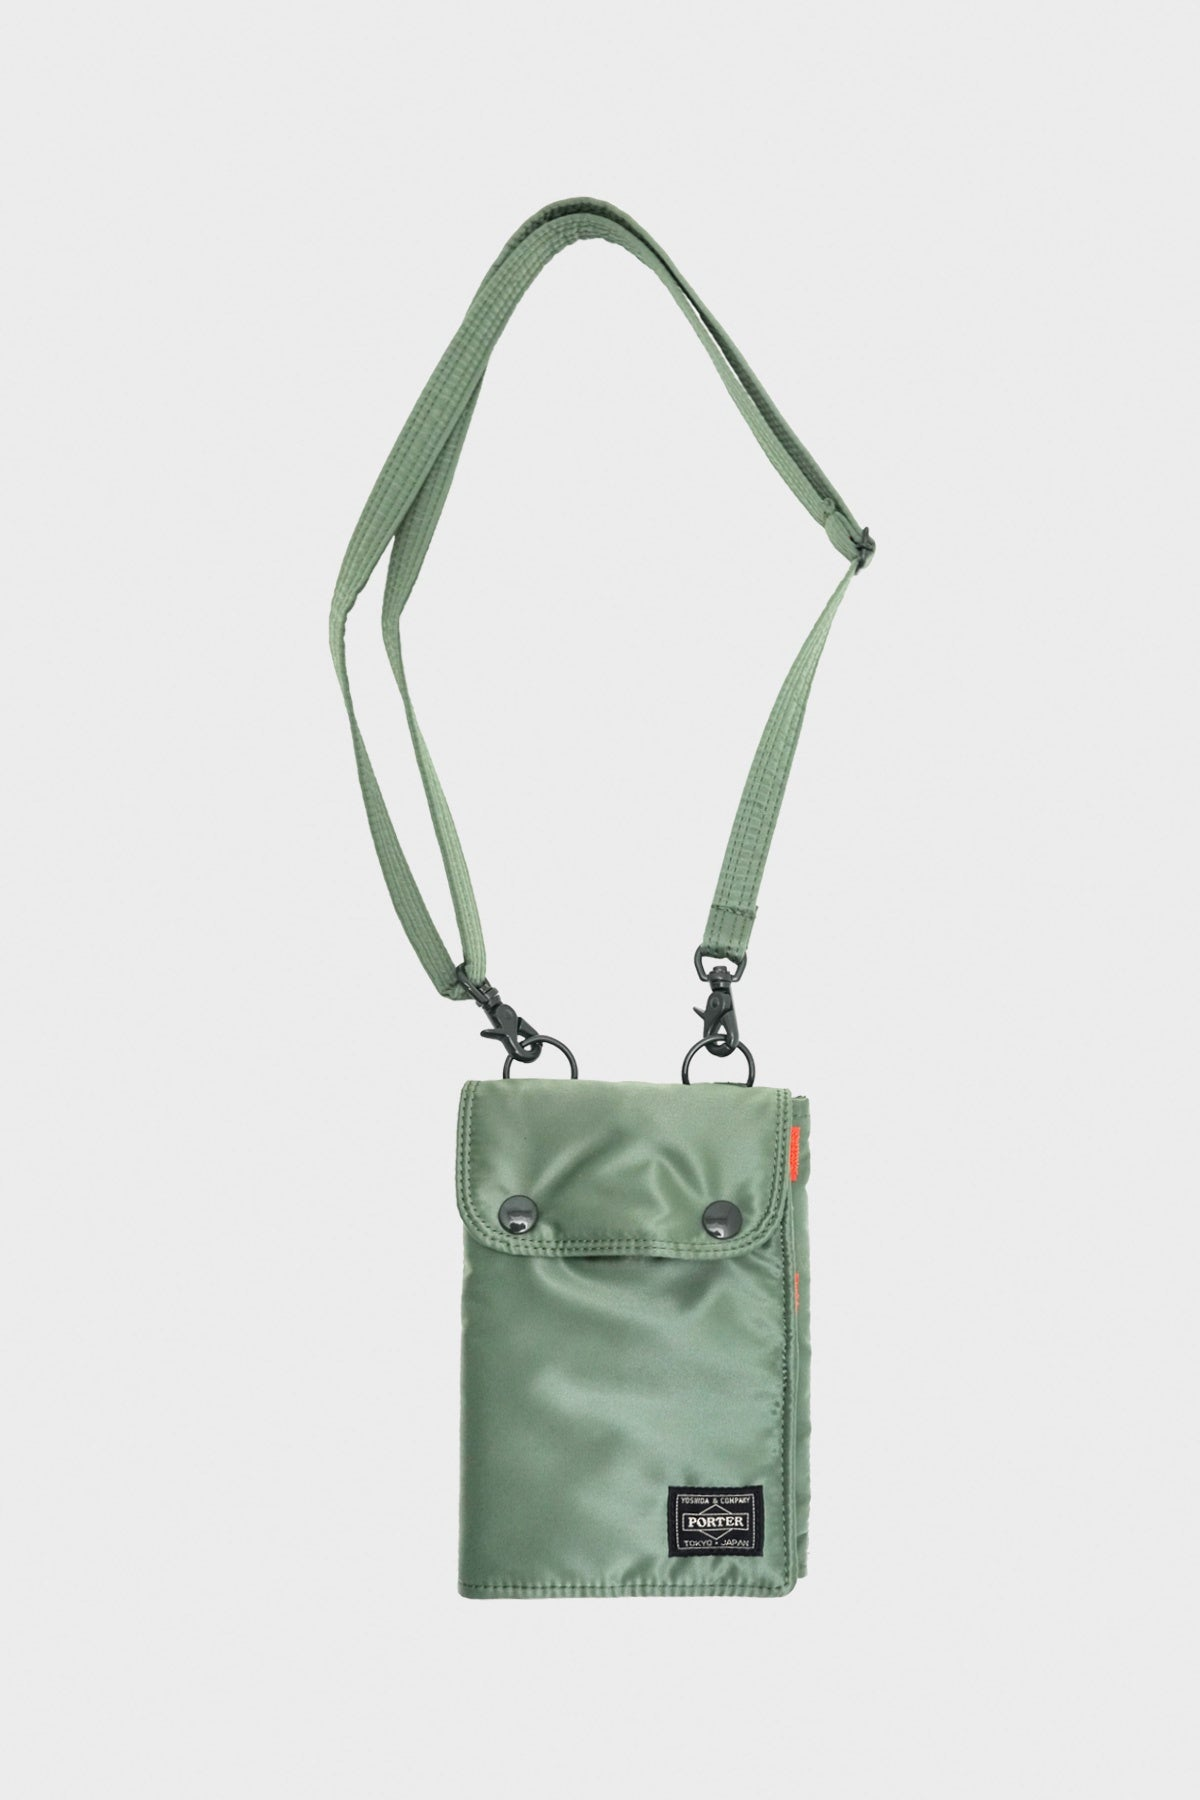 Porter Yoshida and Co - Travel Case - Sage Green - Canoe Club